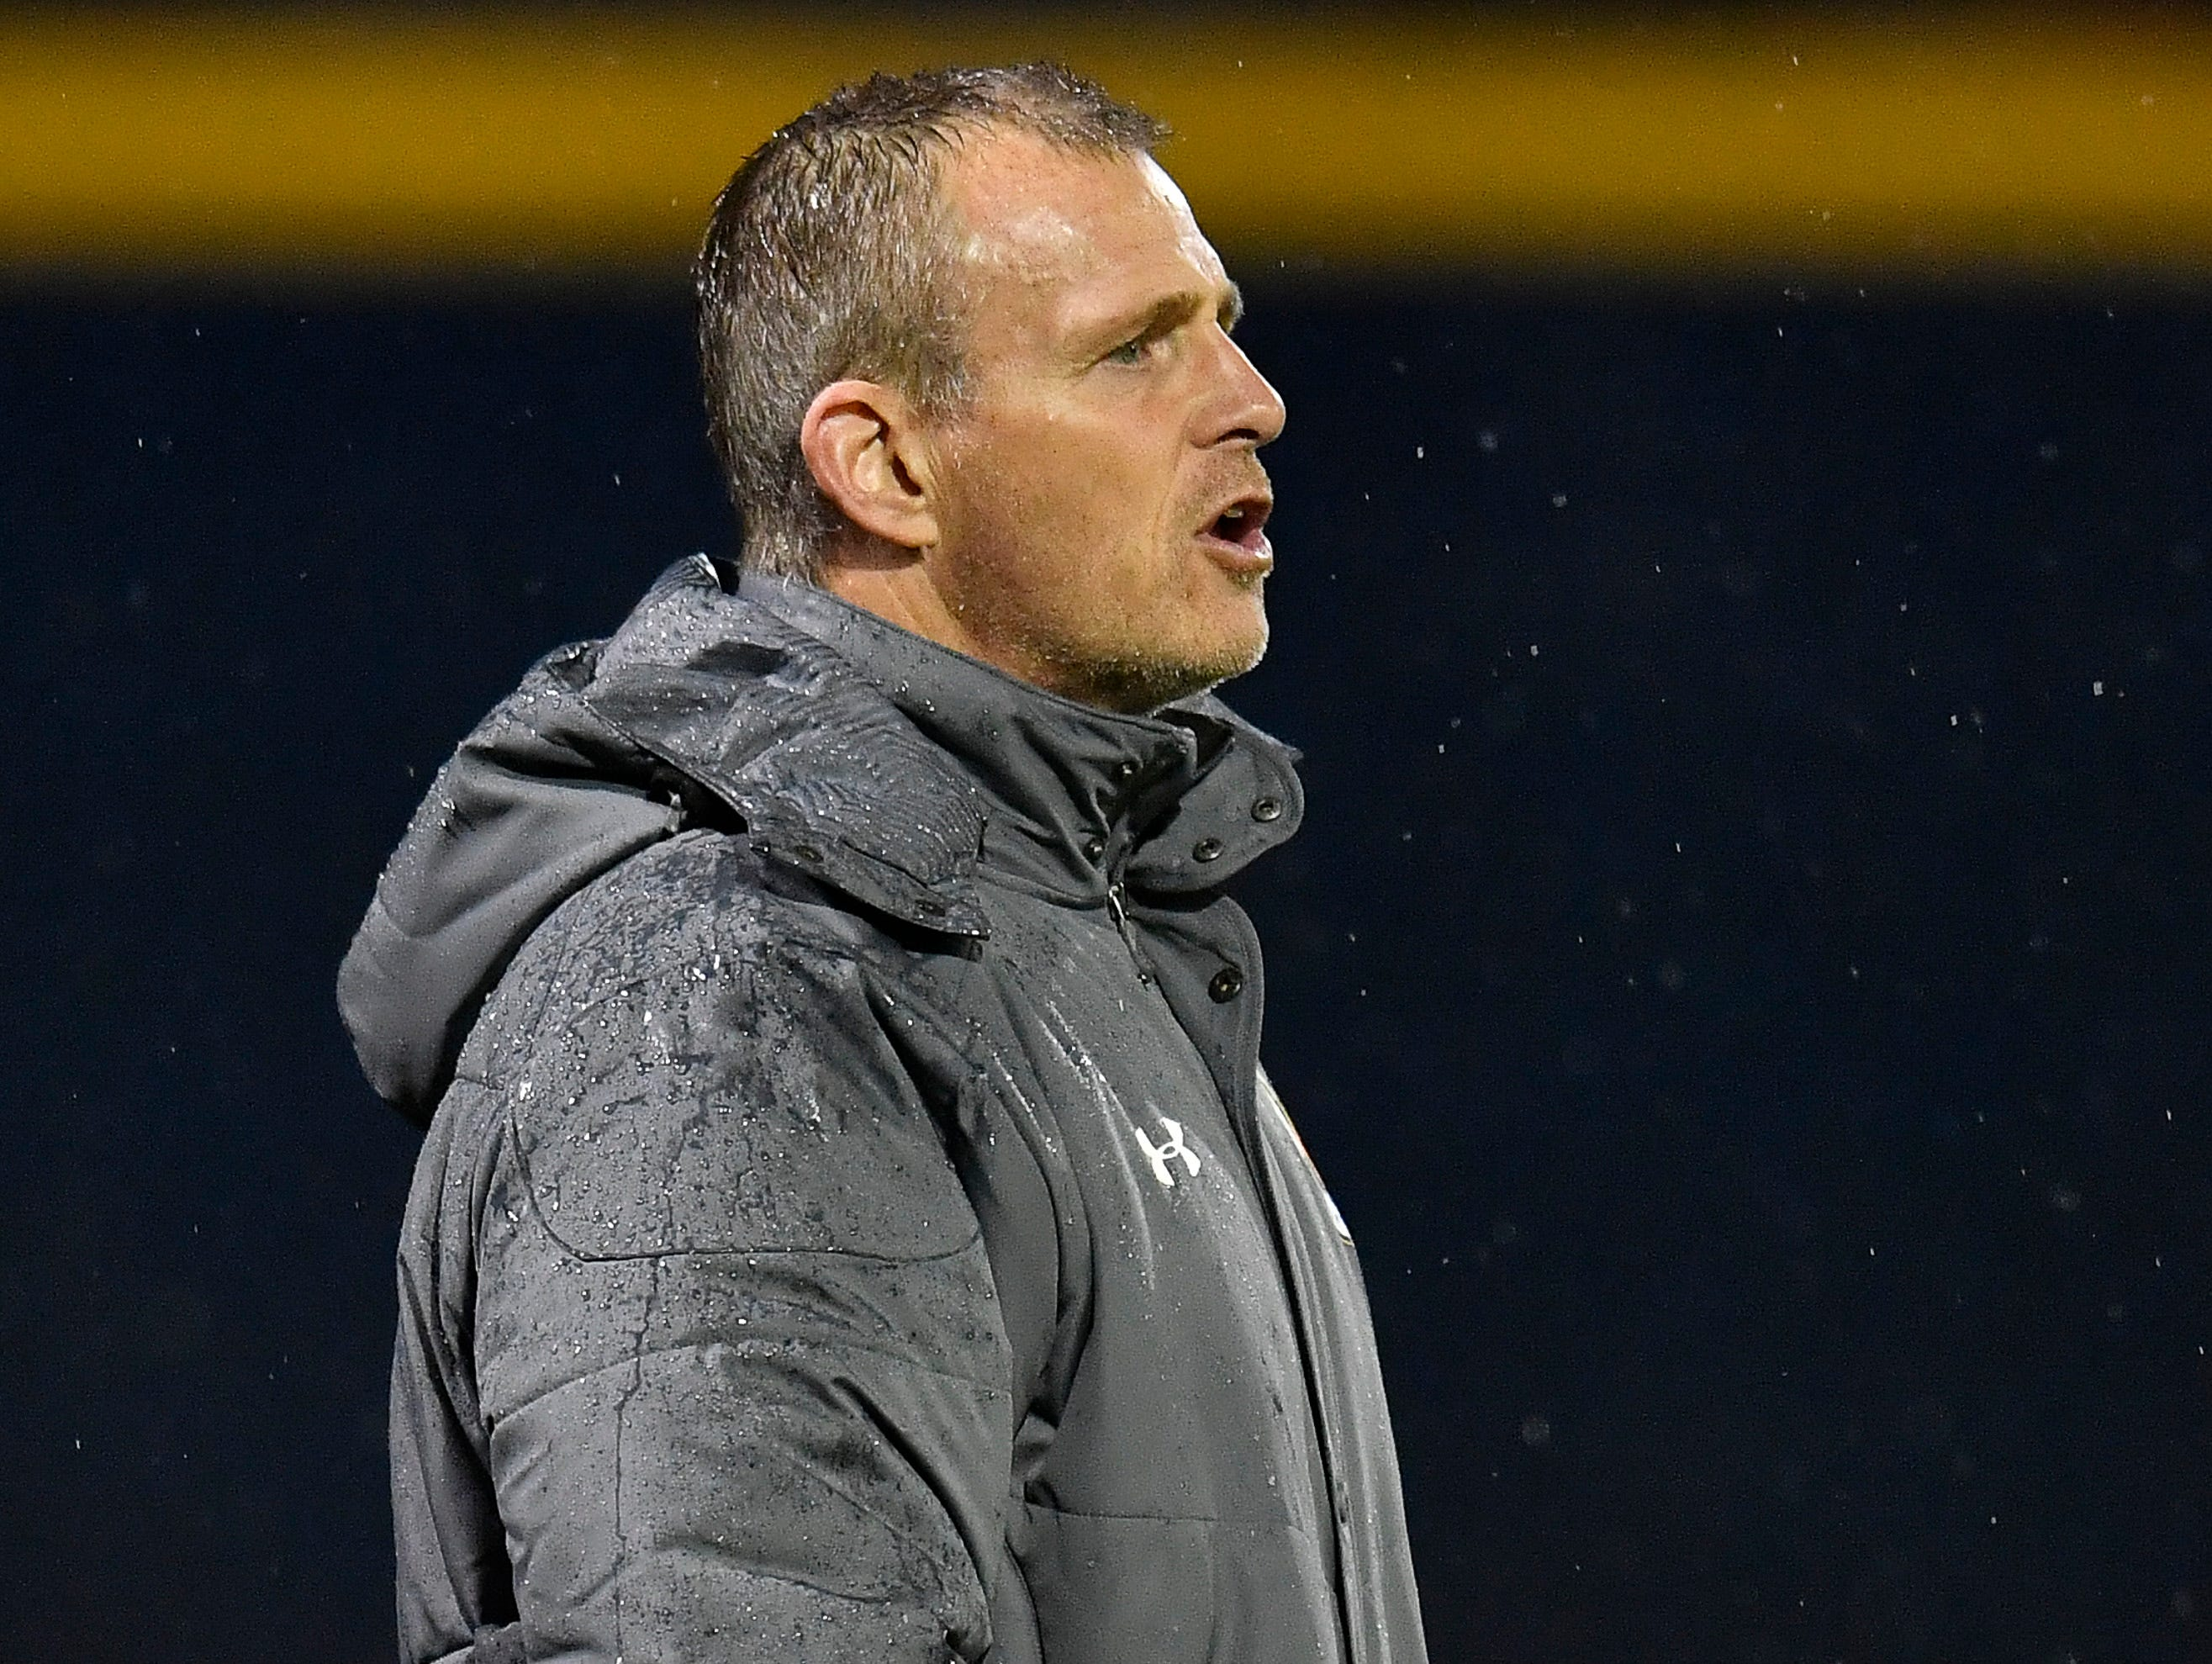 Nashville SC head coach Gary Smith yells at his team during the second half of their preseason game against the New York City FC at First Tennessee Park Friday, Feb. 22, 2019 in Nashville, Tenn.